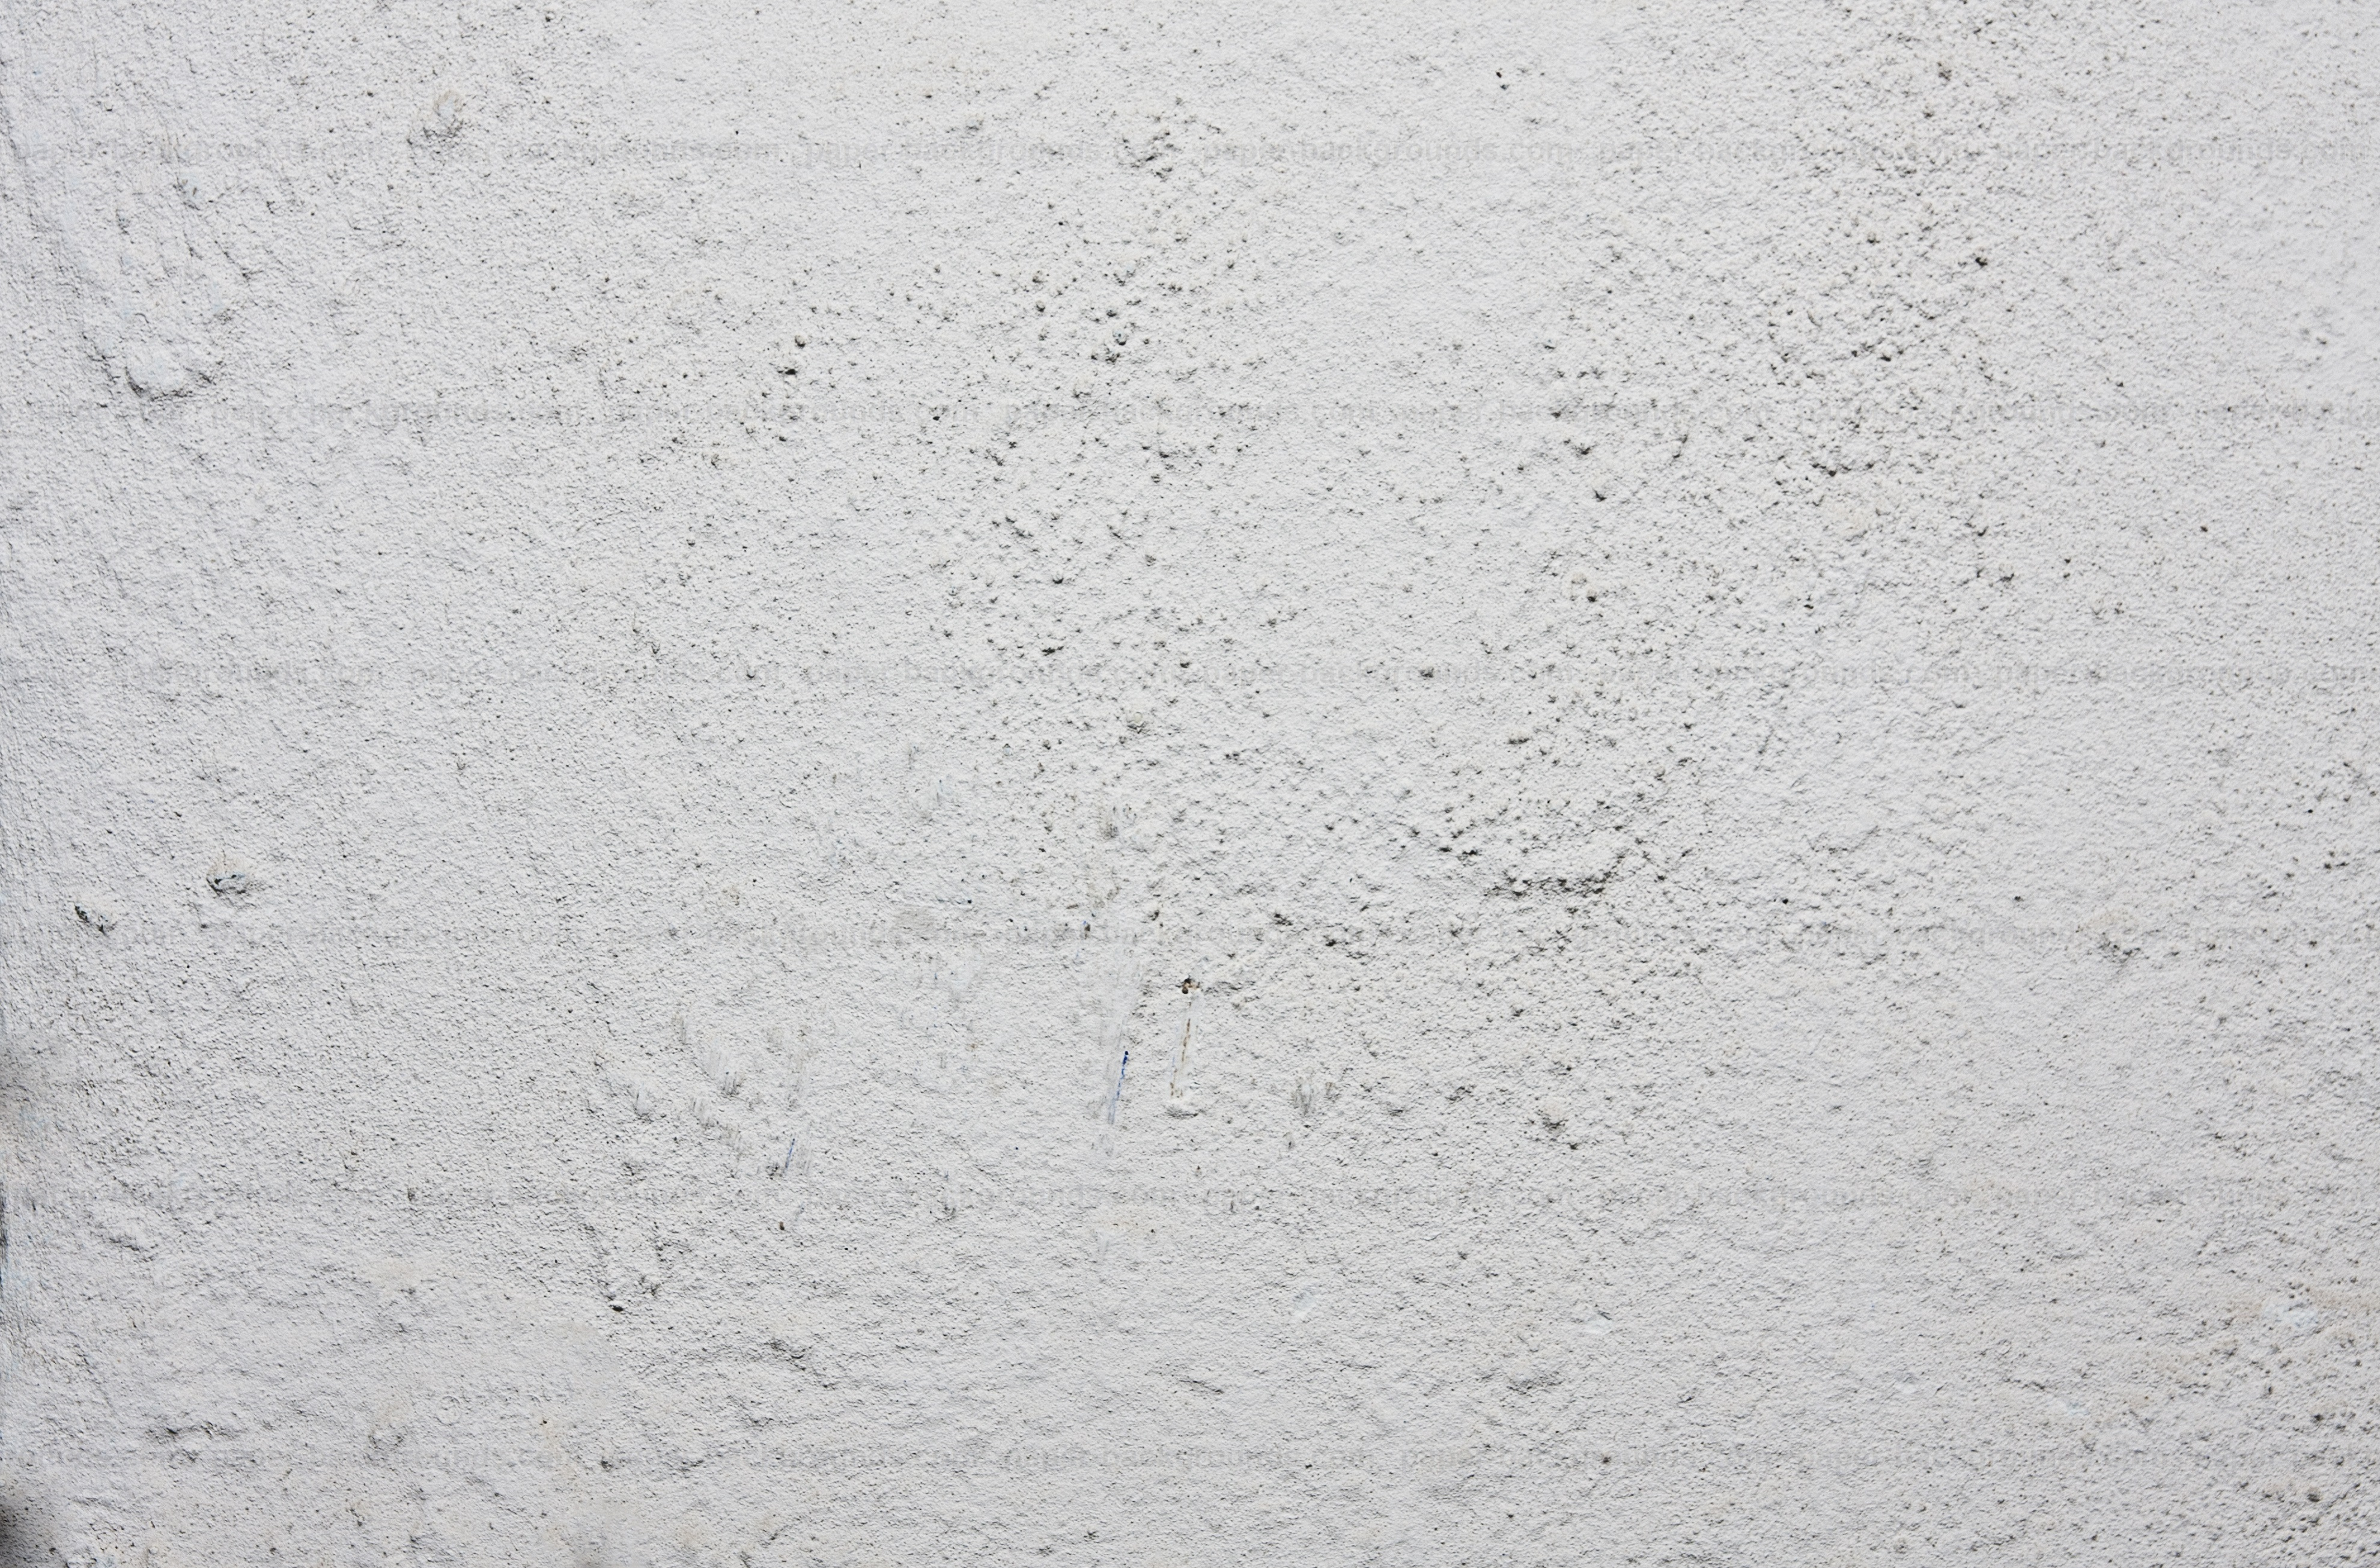 Paper Backgrounds White Concrete Wall Texture